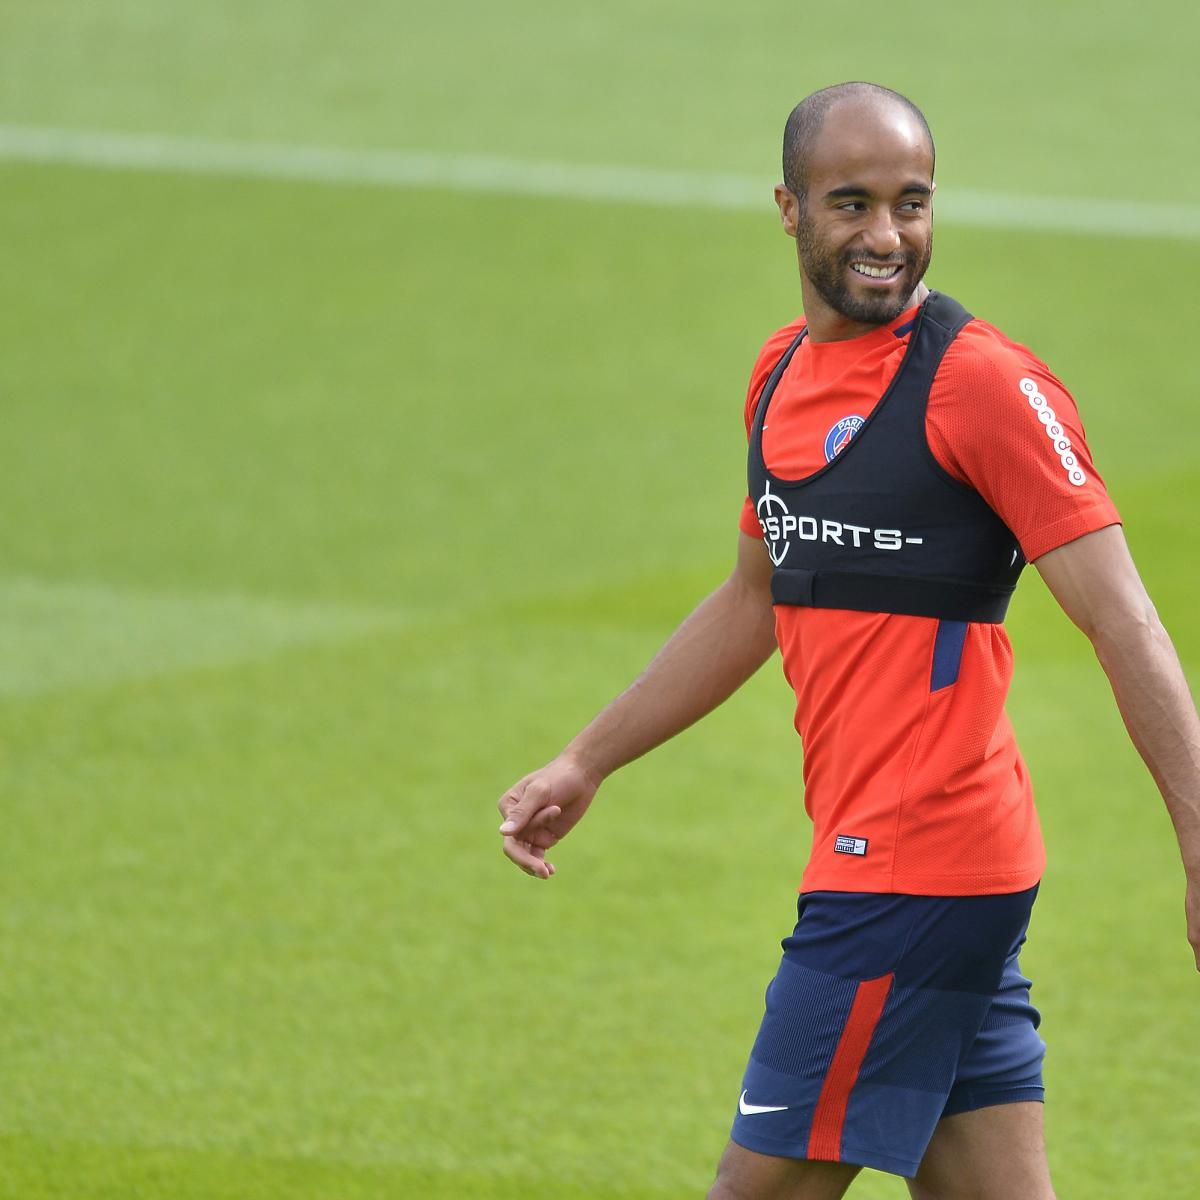 Lucas Moura Equipos Actuales: Arsenal Transfer News: Lucas Moura Advised To Seek Move